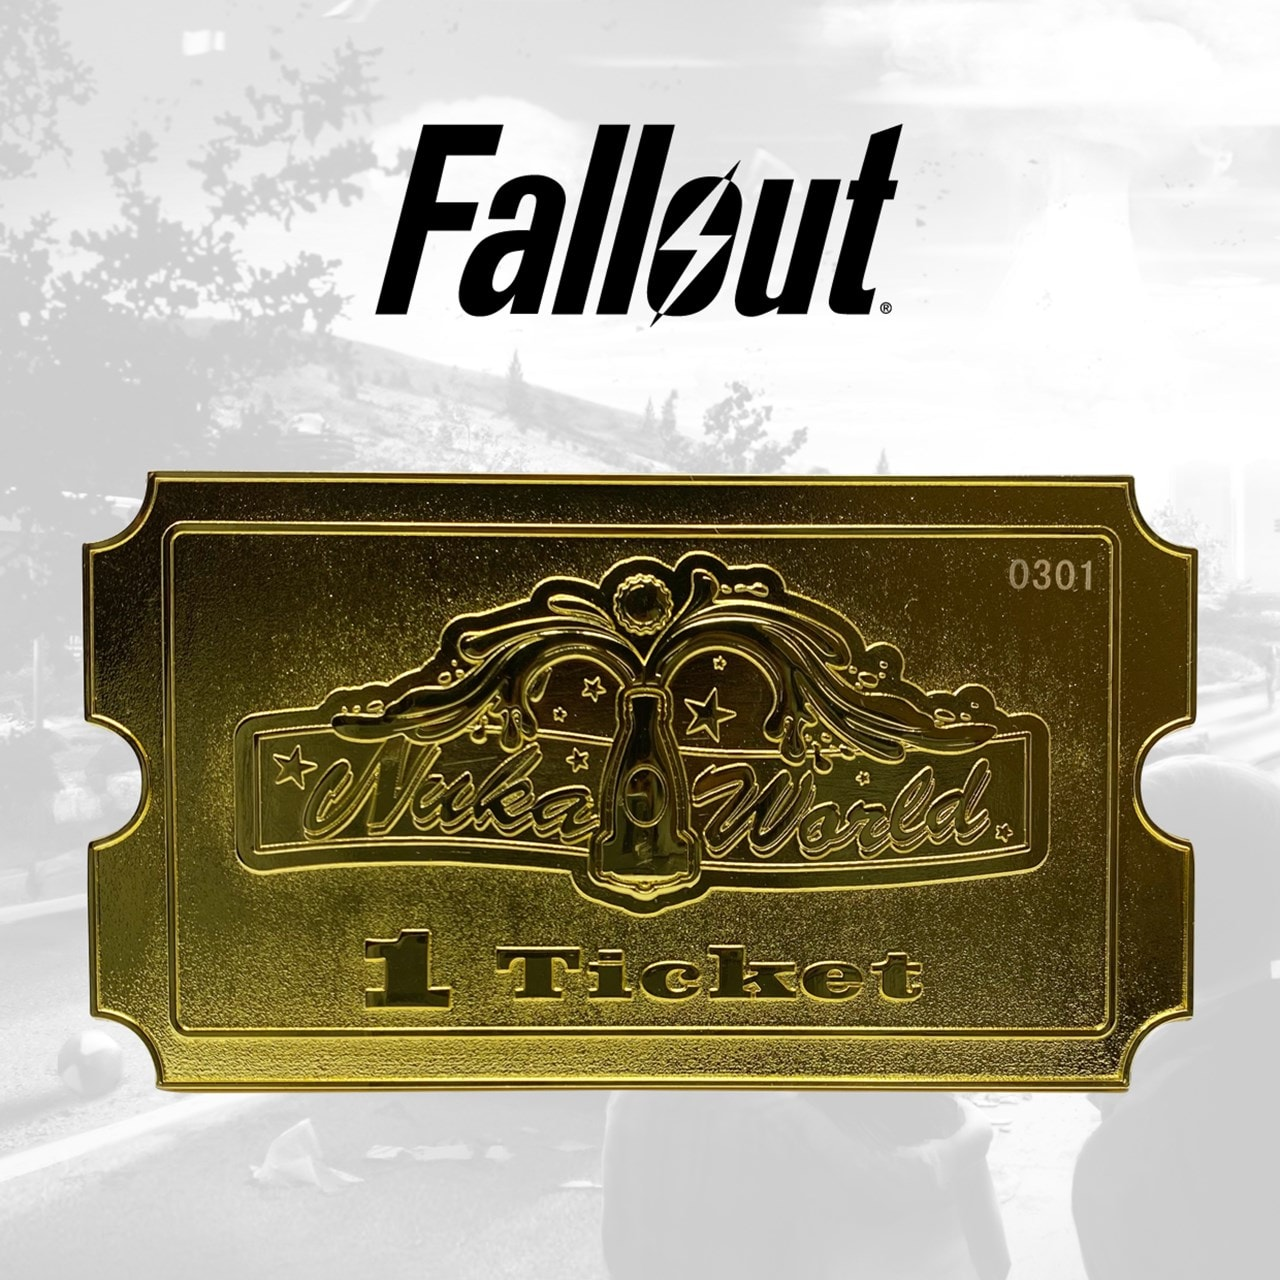 Fallout: Nuka World 24K Gold Plated Ticket Metal Replica (online only) - 1